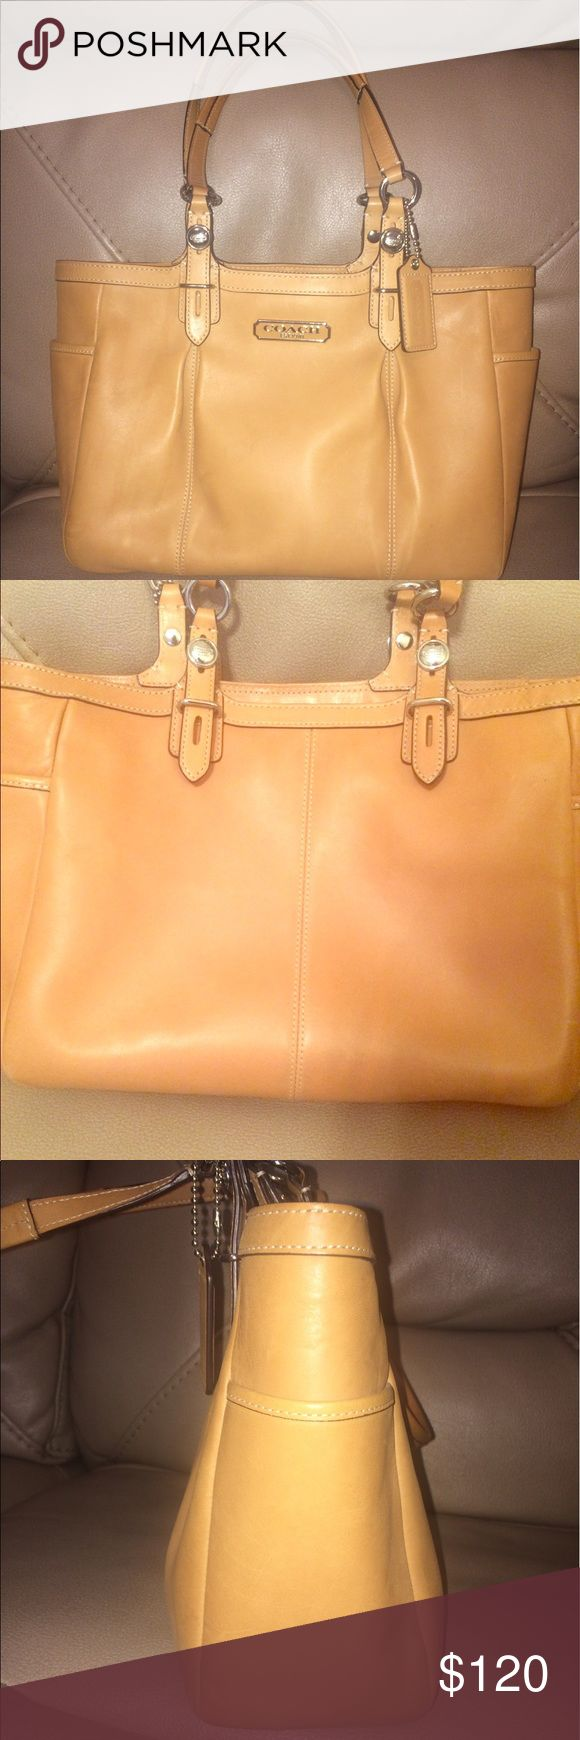 Coach leather handbag Authentic coach leather handbag in tan. In good condition. All it has is a lighter streak. See last picture. Not really noticeable. Nothing a leather conditioner couldn't help. Comes with its coach tag and still has the cleaning instructions inside. Coach Bags Shoulder Bags